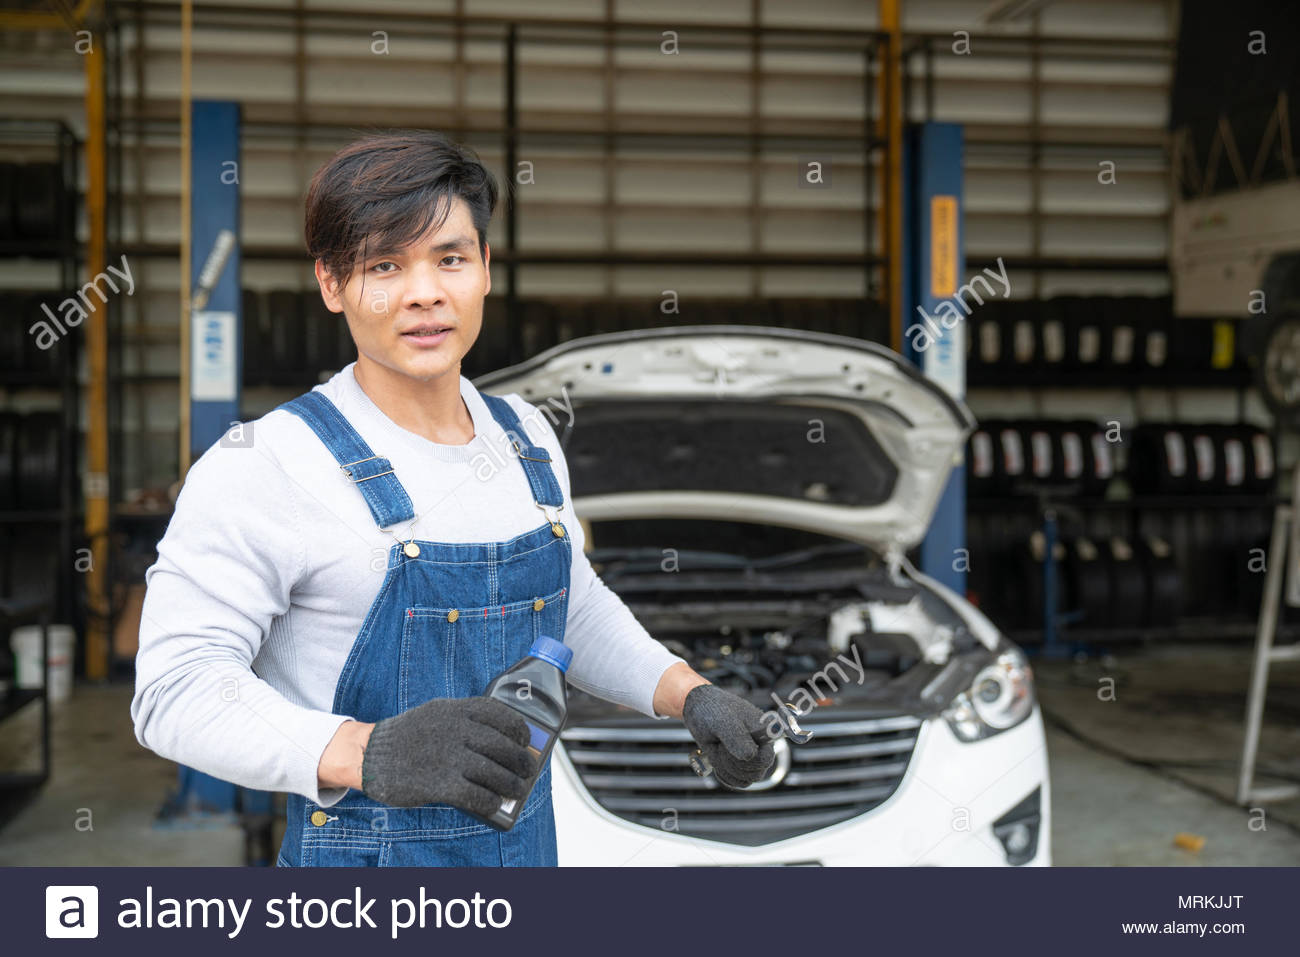 car mechanic with wrench in garage. - Stock Image